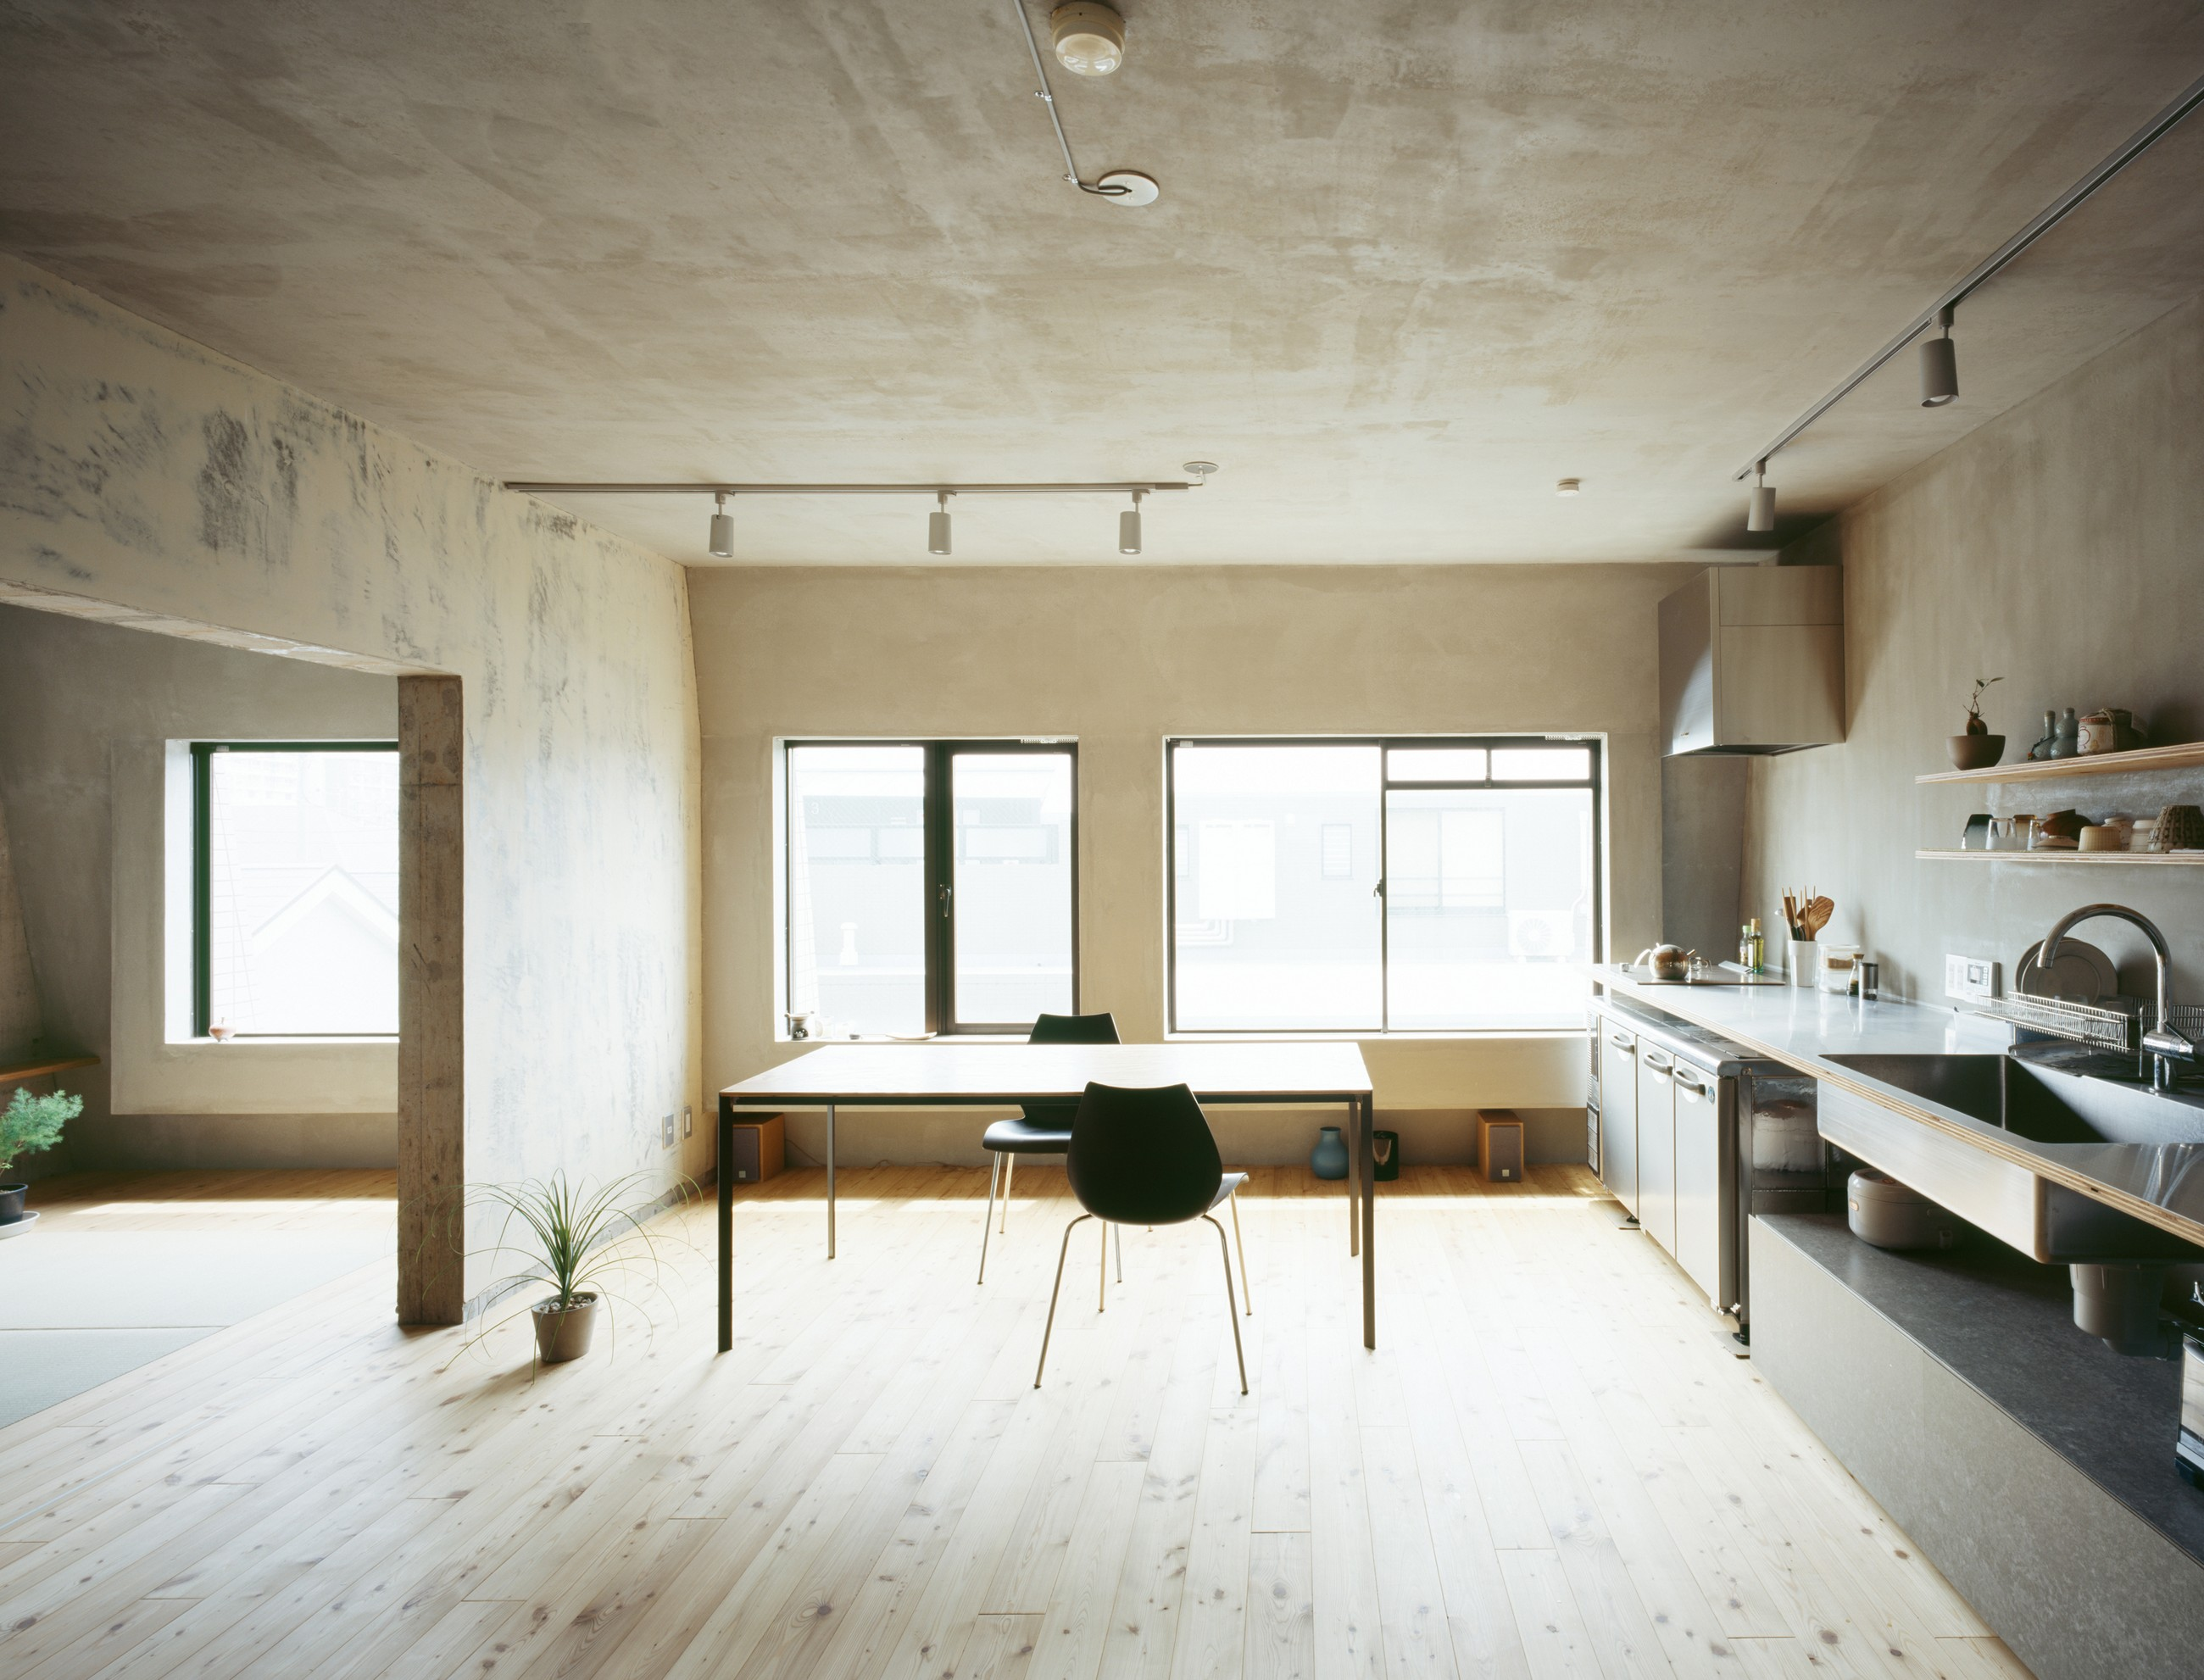 Naruse-INOKUMA Architects